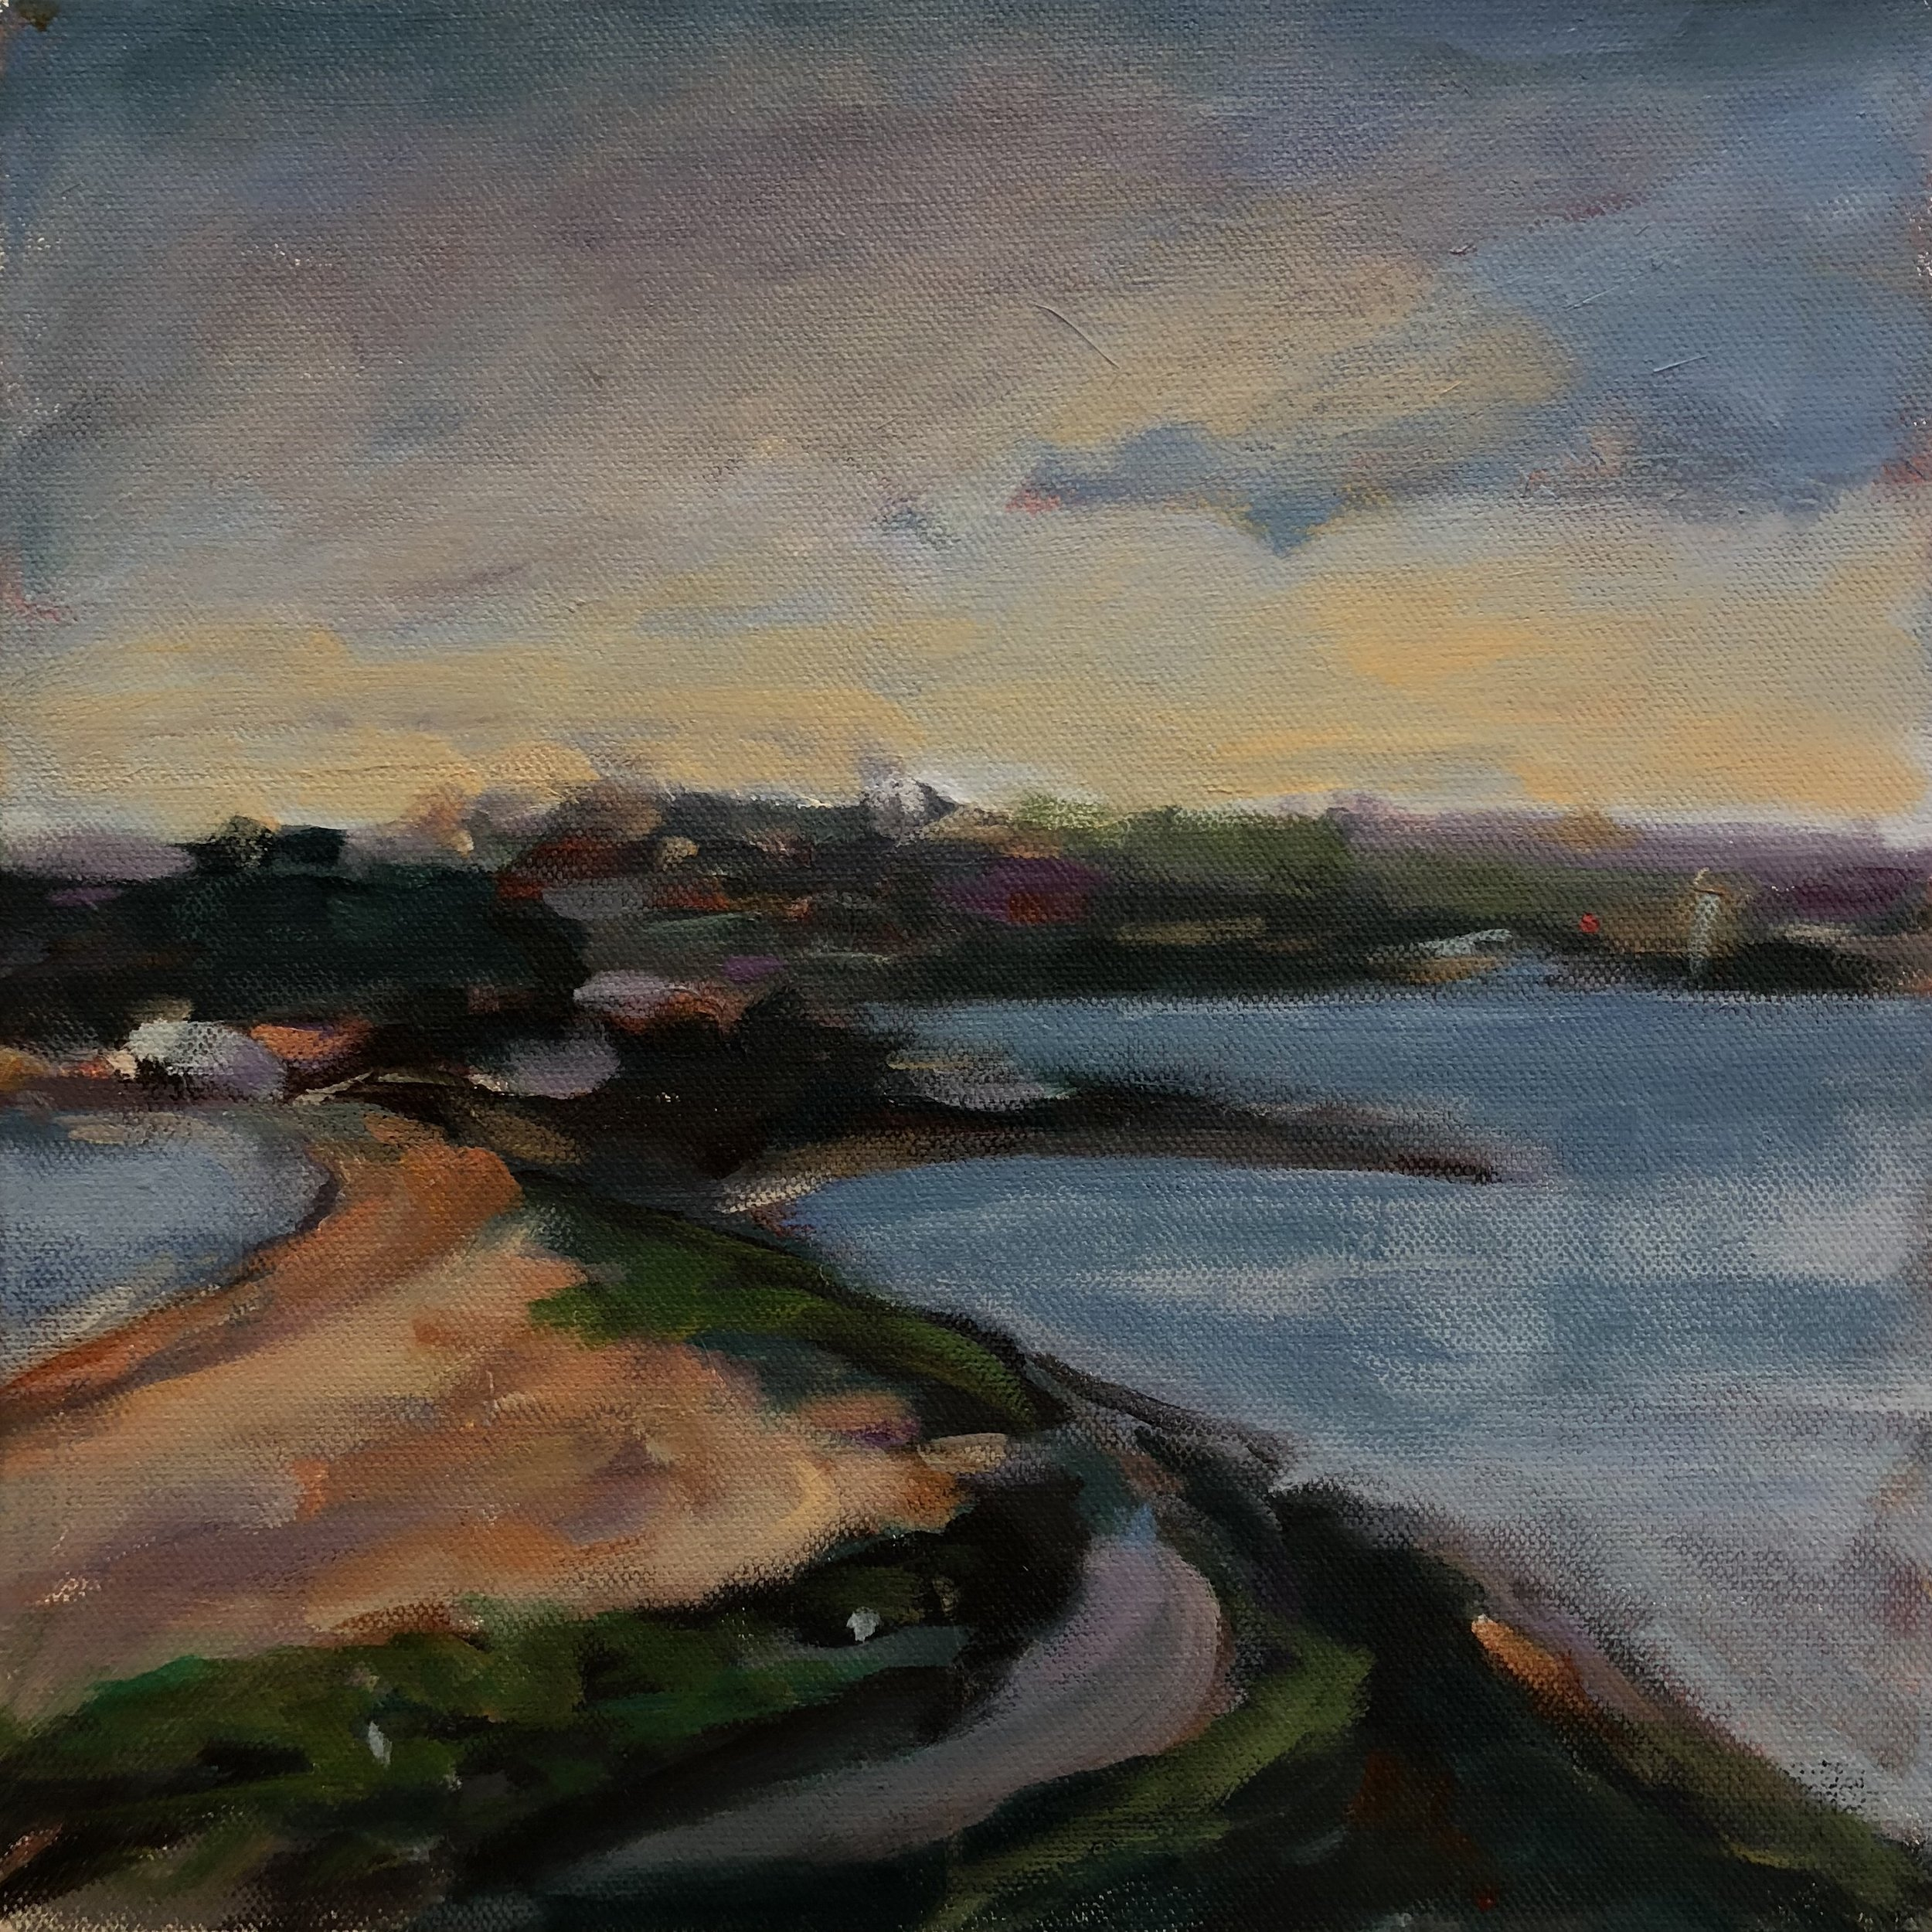 Andrew Finnie   View From The Peninsula  2017 acrylic on canvas 30 x 30cm $450.00